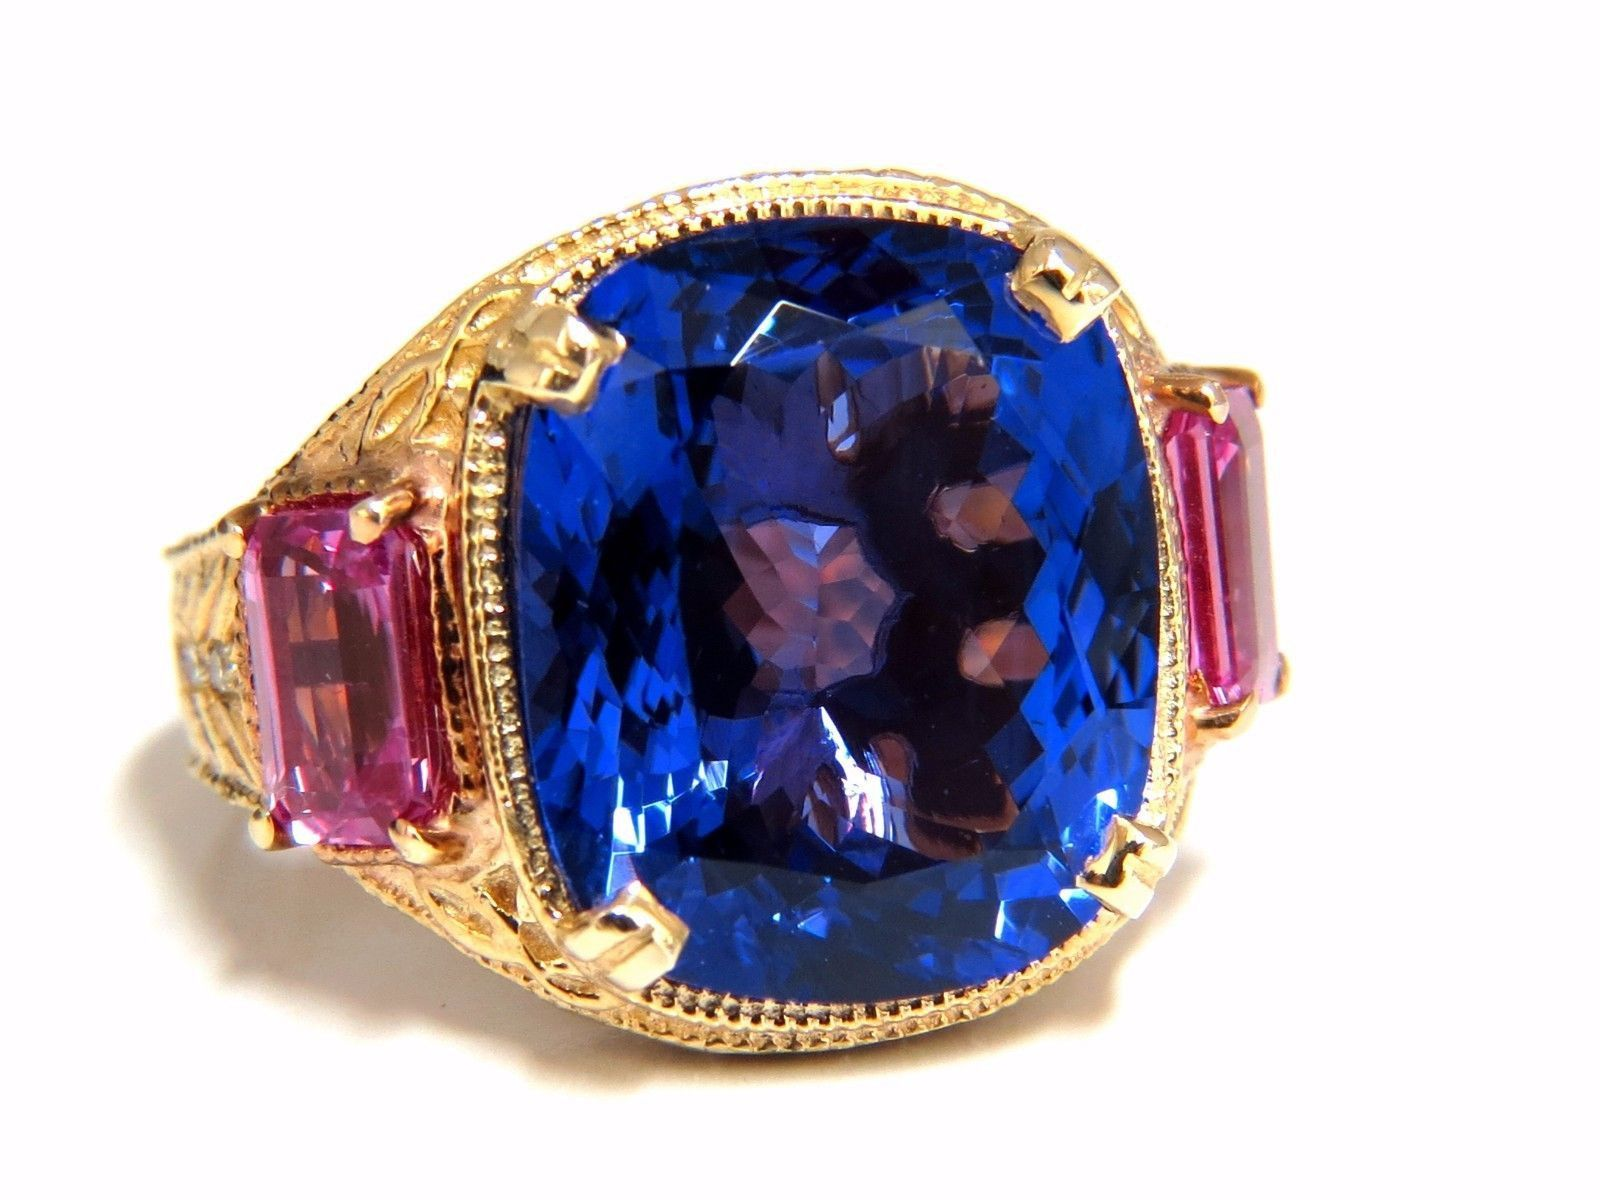 gemstone catalog ring tanzanite unheated jumbo island jewellery natural certified singapore buy gia